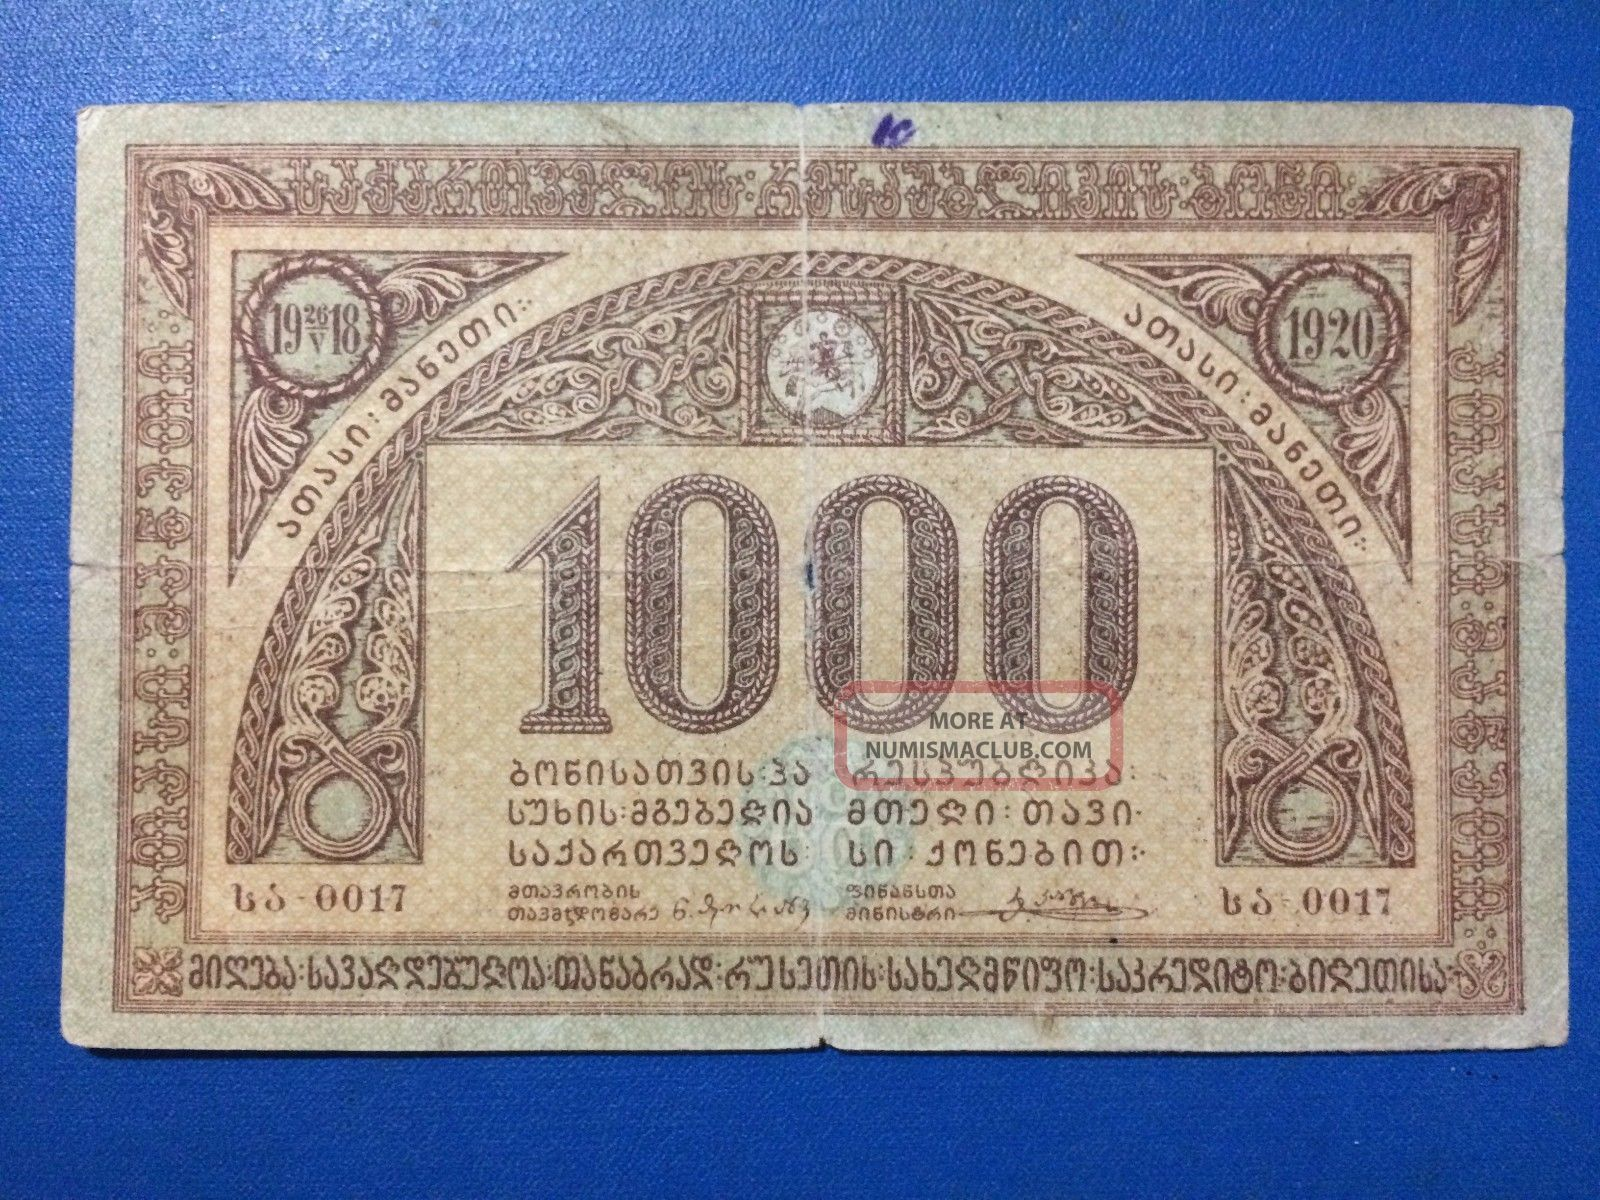 Banknote 1000 Rubles 1920,  G - Vg,  Georgia,  Russia,  Civil War Europe photo